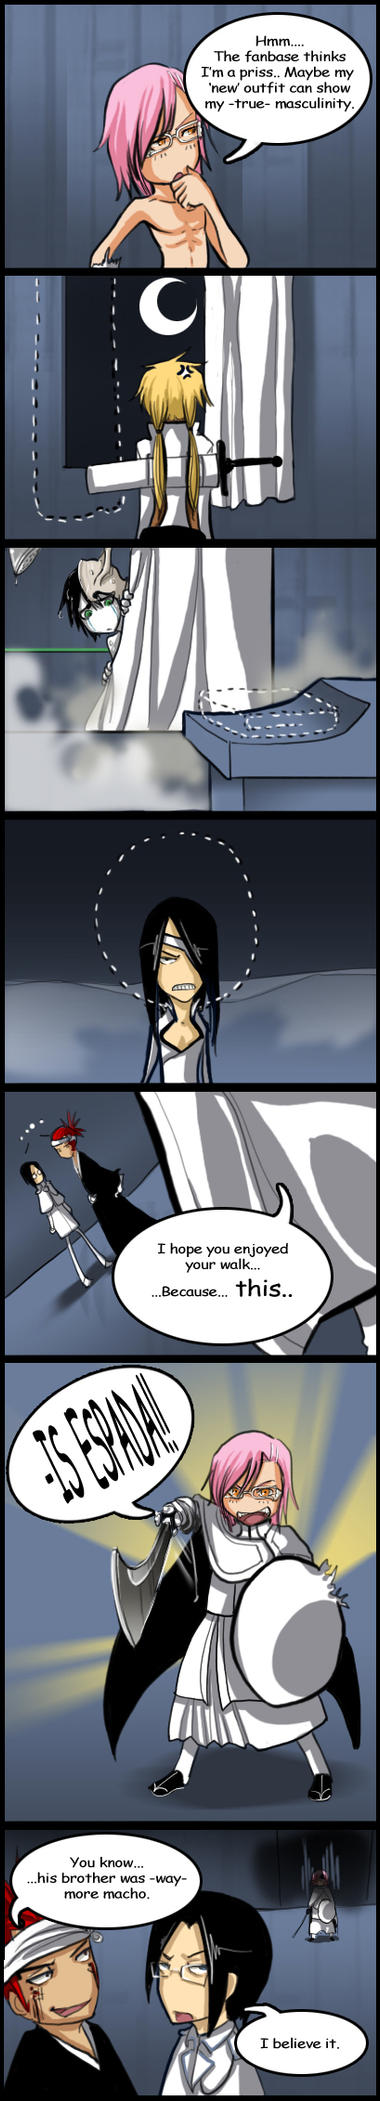 Arrancar Antics - 5 by oneoftwo